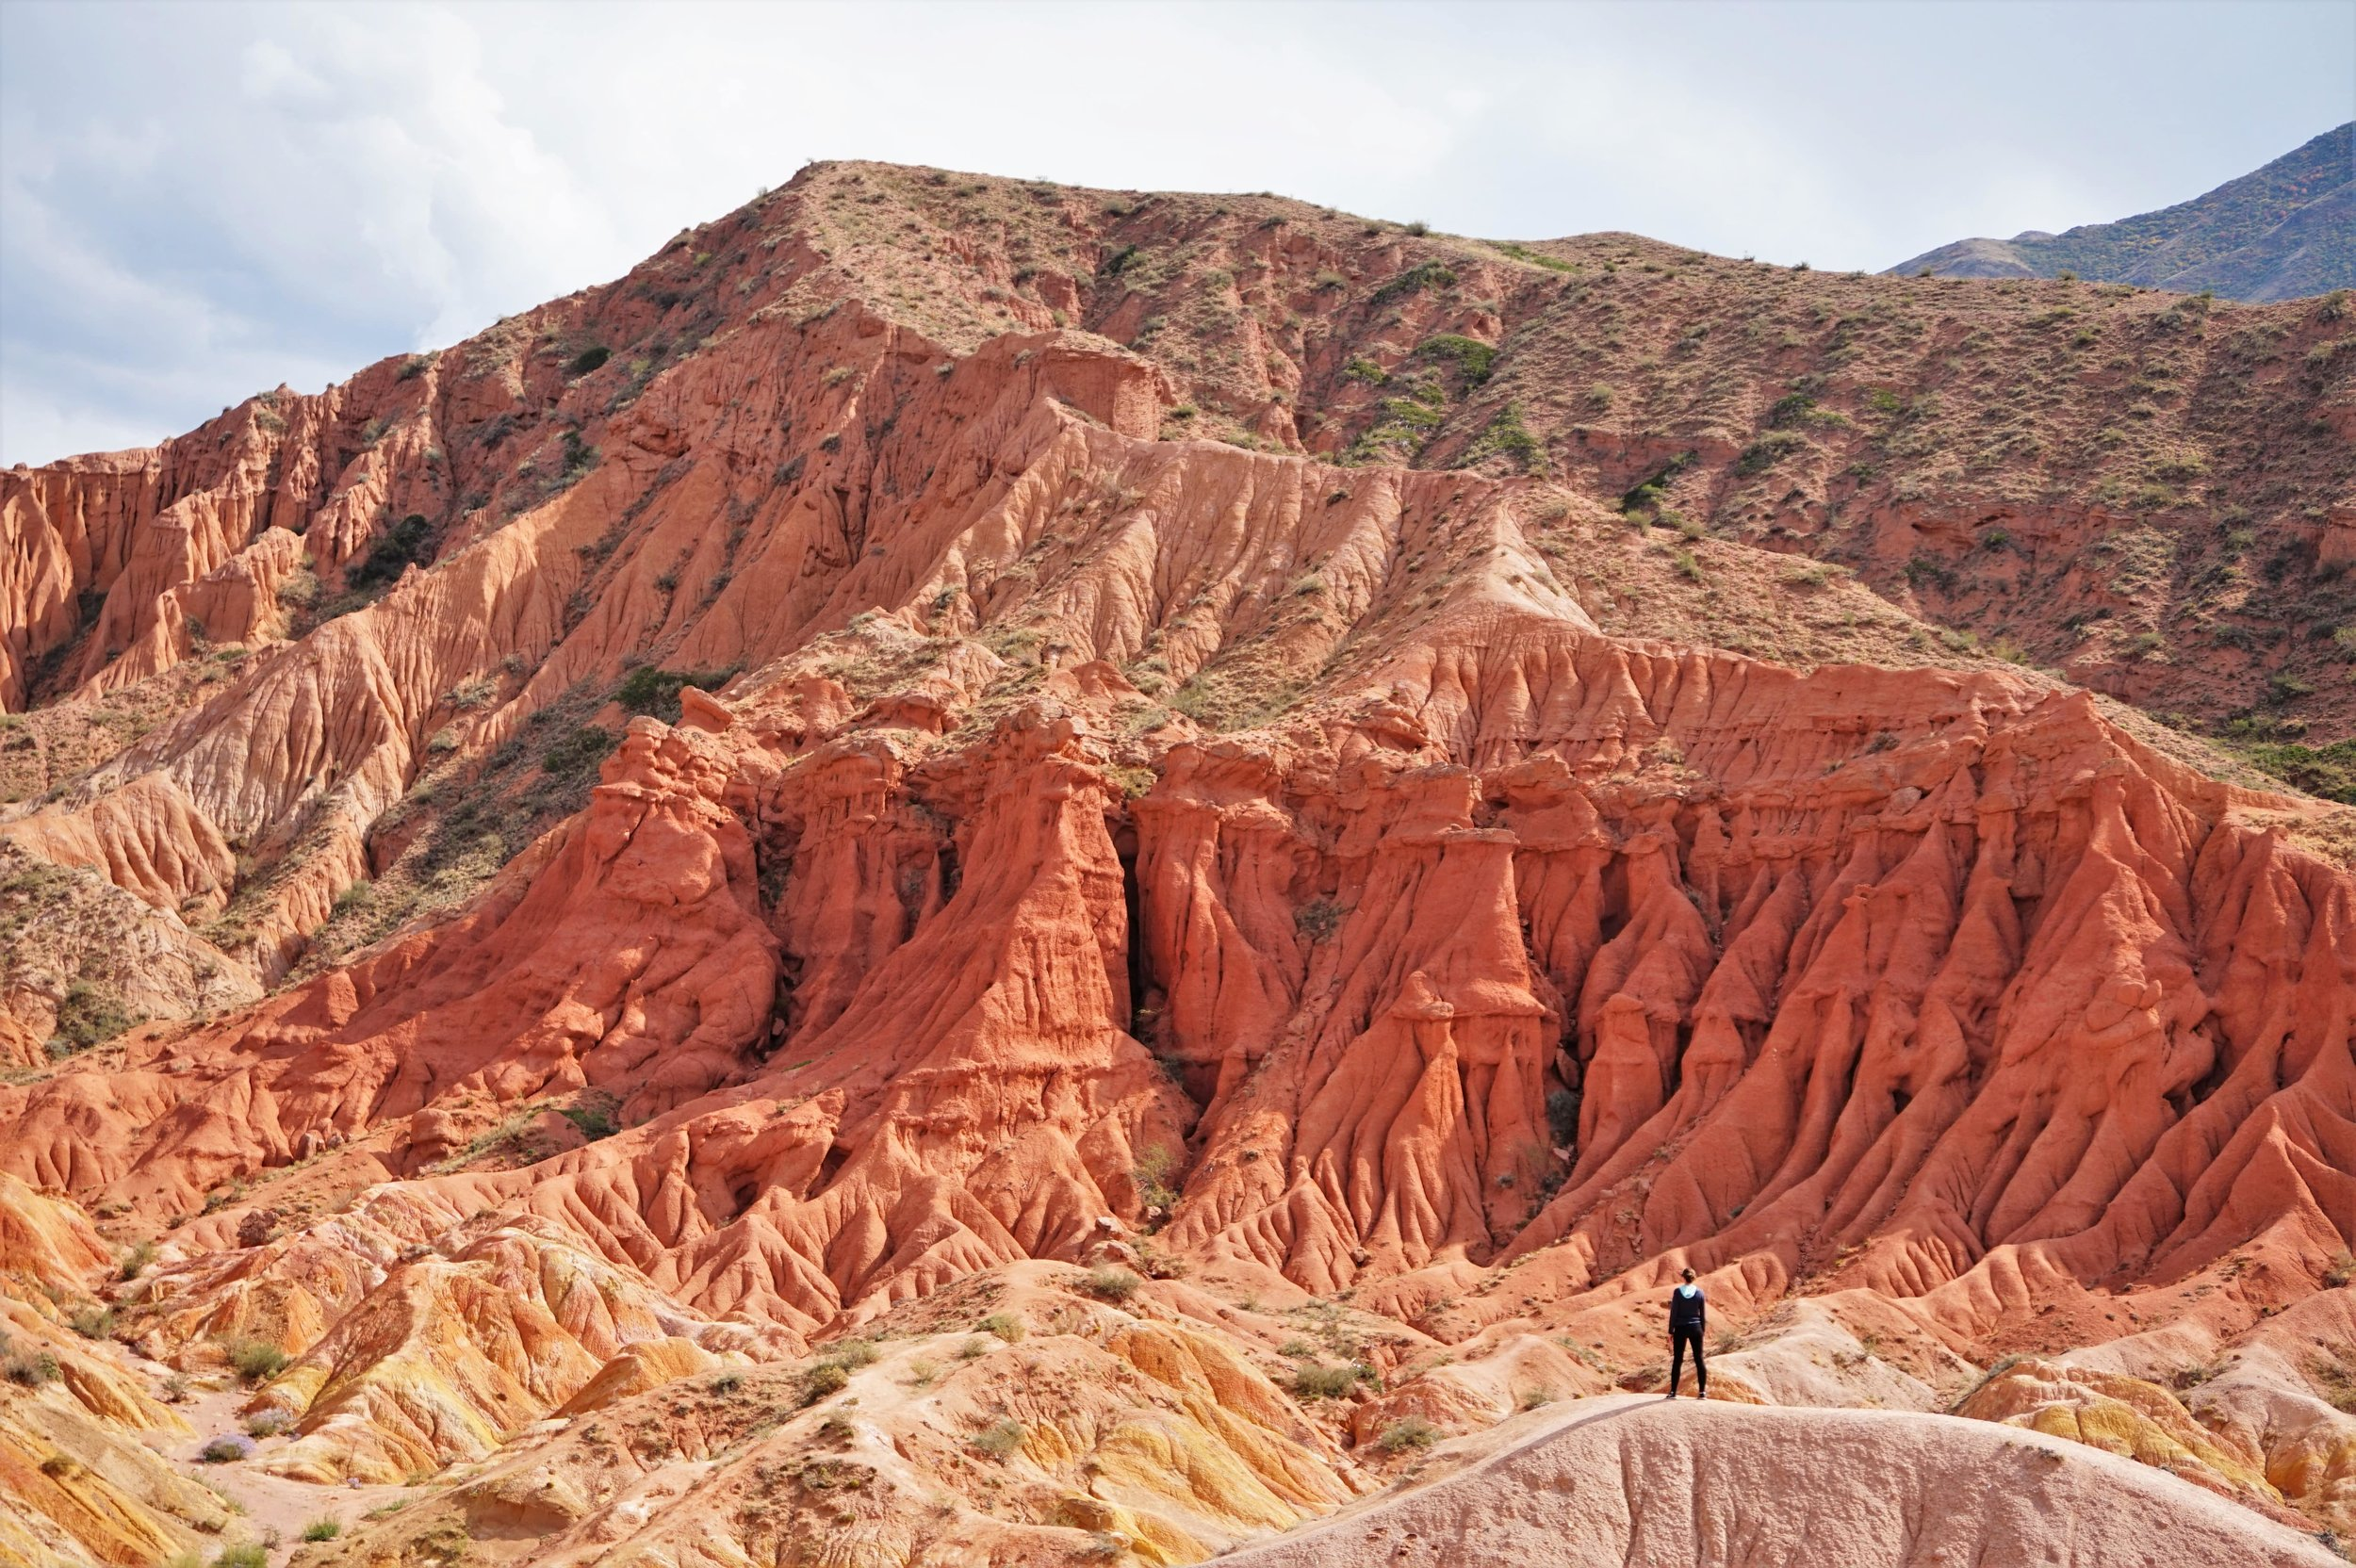 To visit the fairy tale canyon is one of the most awesome things to do in Kyrgyzstan! Should be on everybody's bucket list of things to do in Kyrgyzstan.